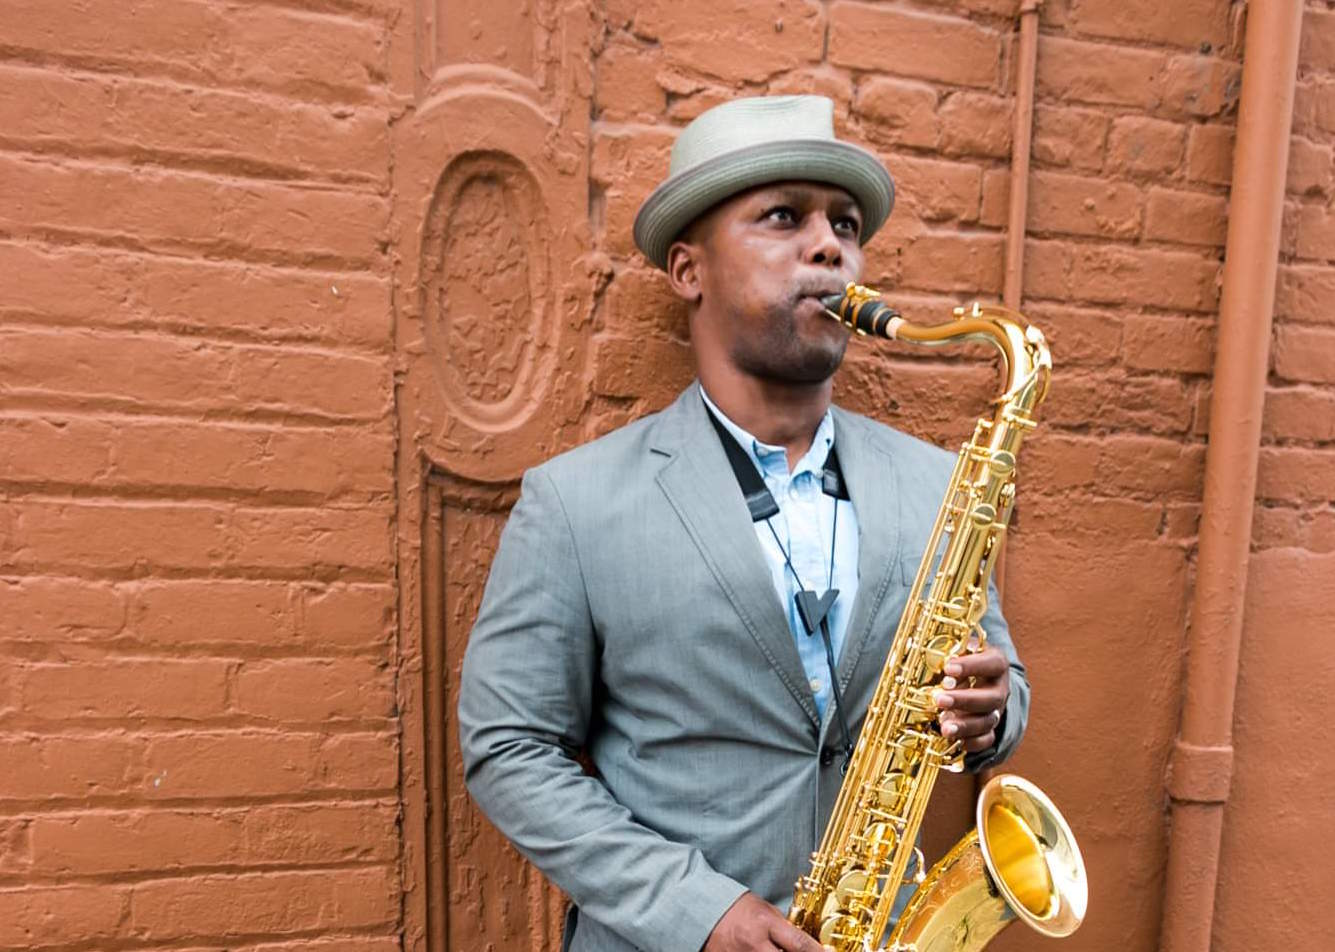 Local Saxophonist JD Allen Continues Dreaming With New Album Release - Cincinnati Magazine